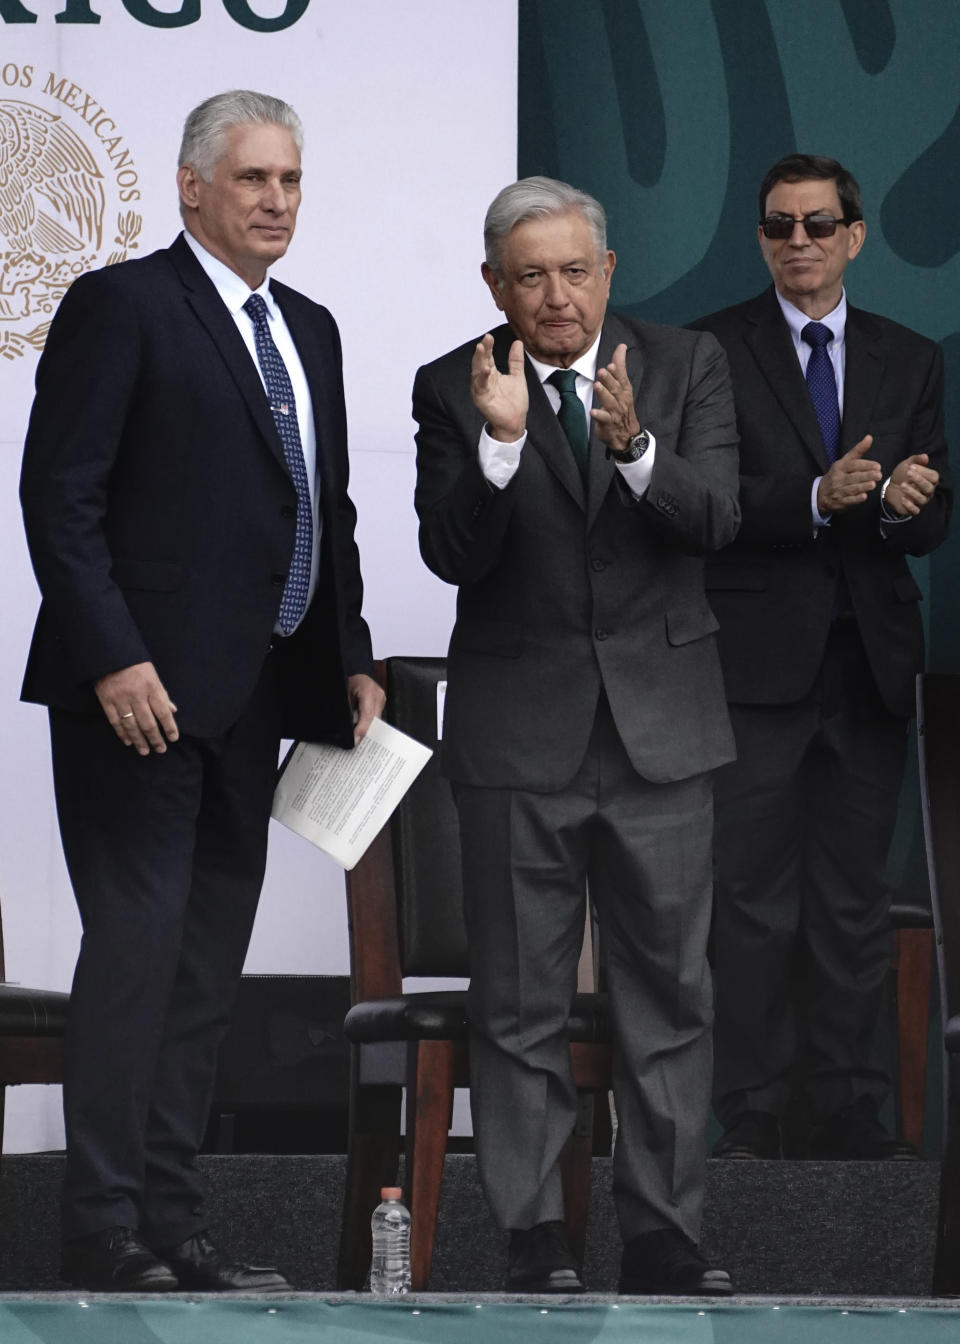 Cuba's President Miguel Diaz-Canel, left, accompanies Mexico's President Andres Manuel Lopez Obrador, during Independence Day celebrations, in the Zocalo in Mexico City, Thursday, Sept. 16, 2021. (AP Photo/Marco Ugarte)